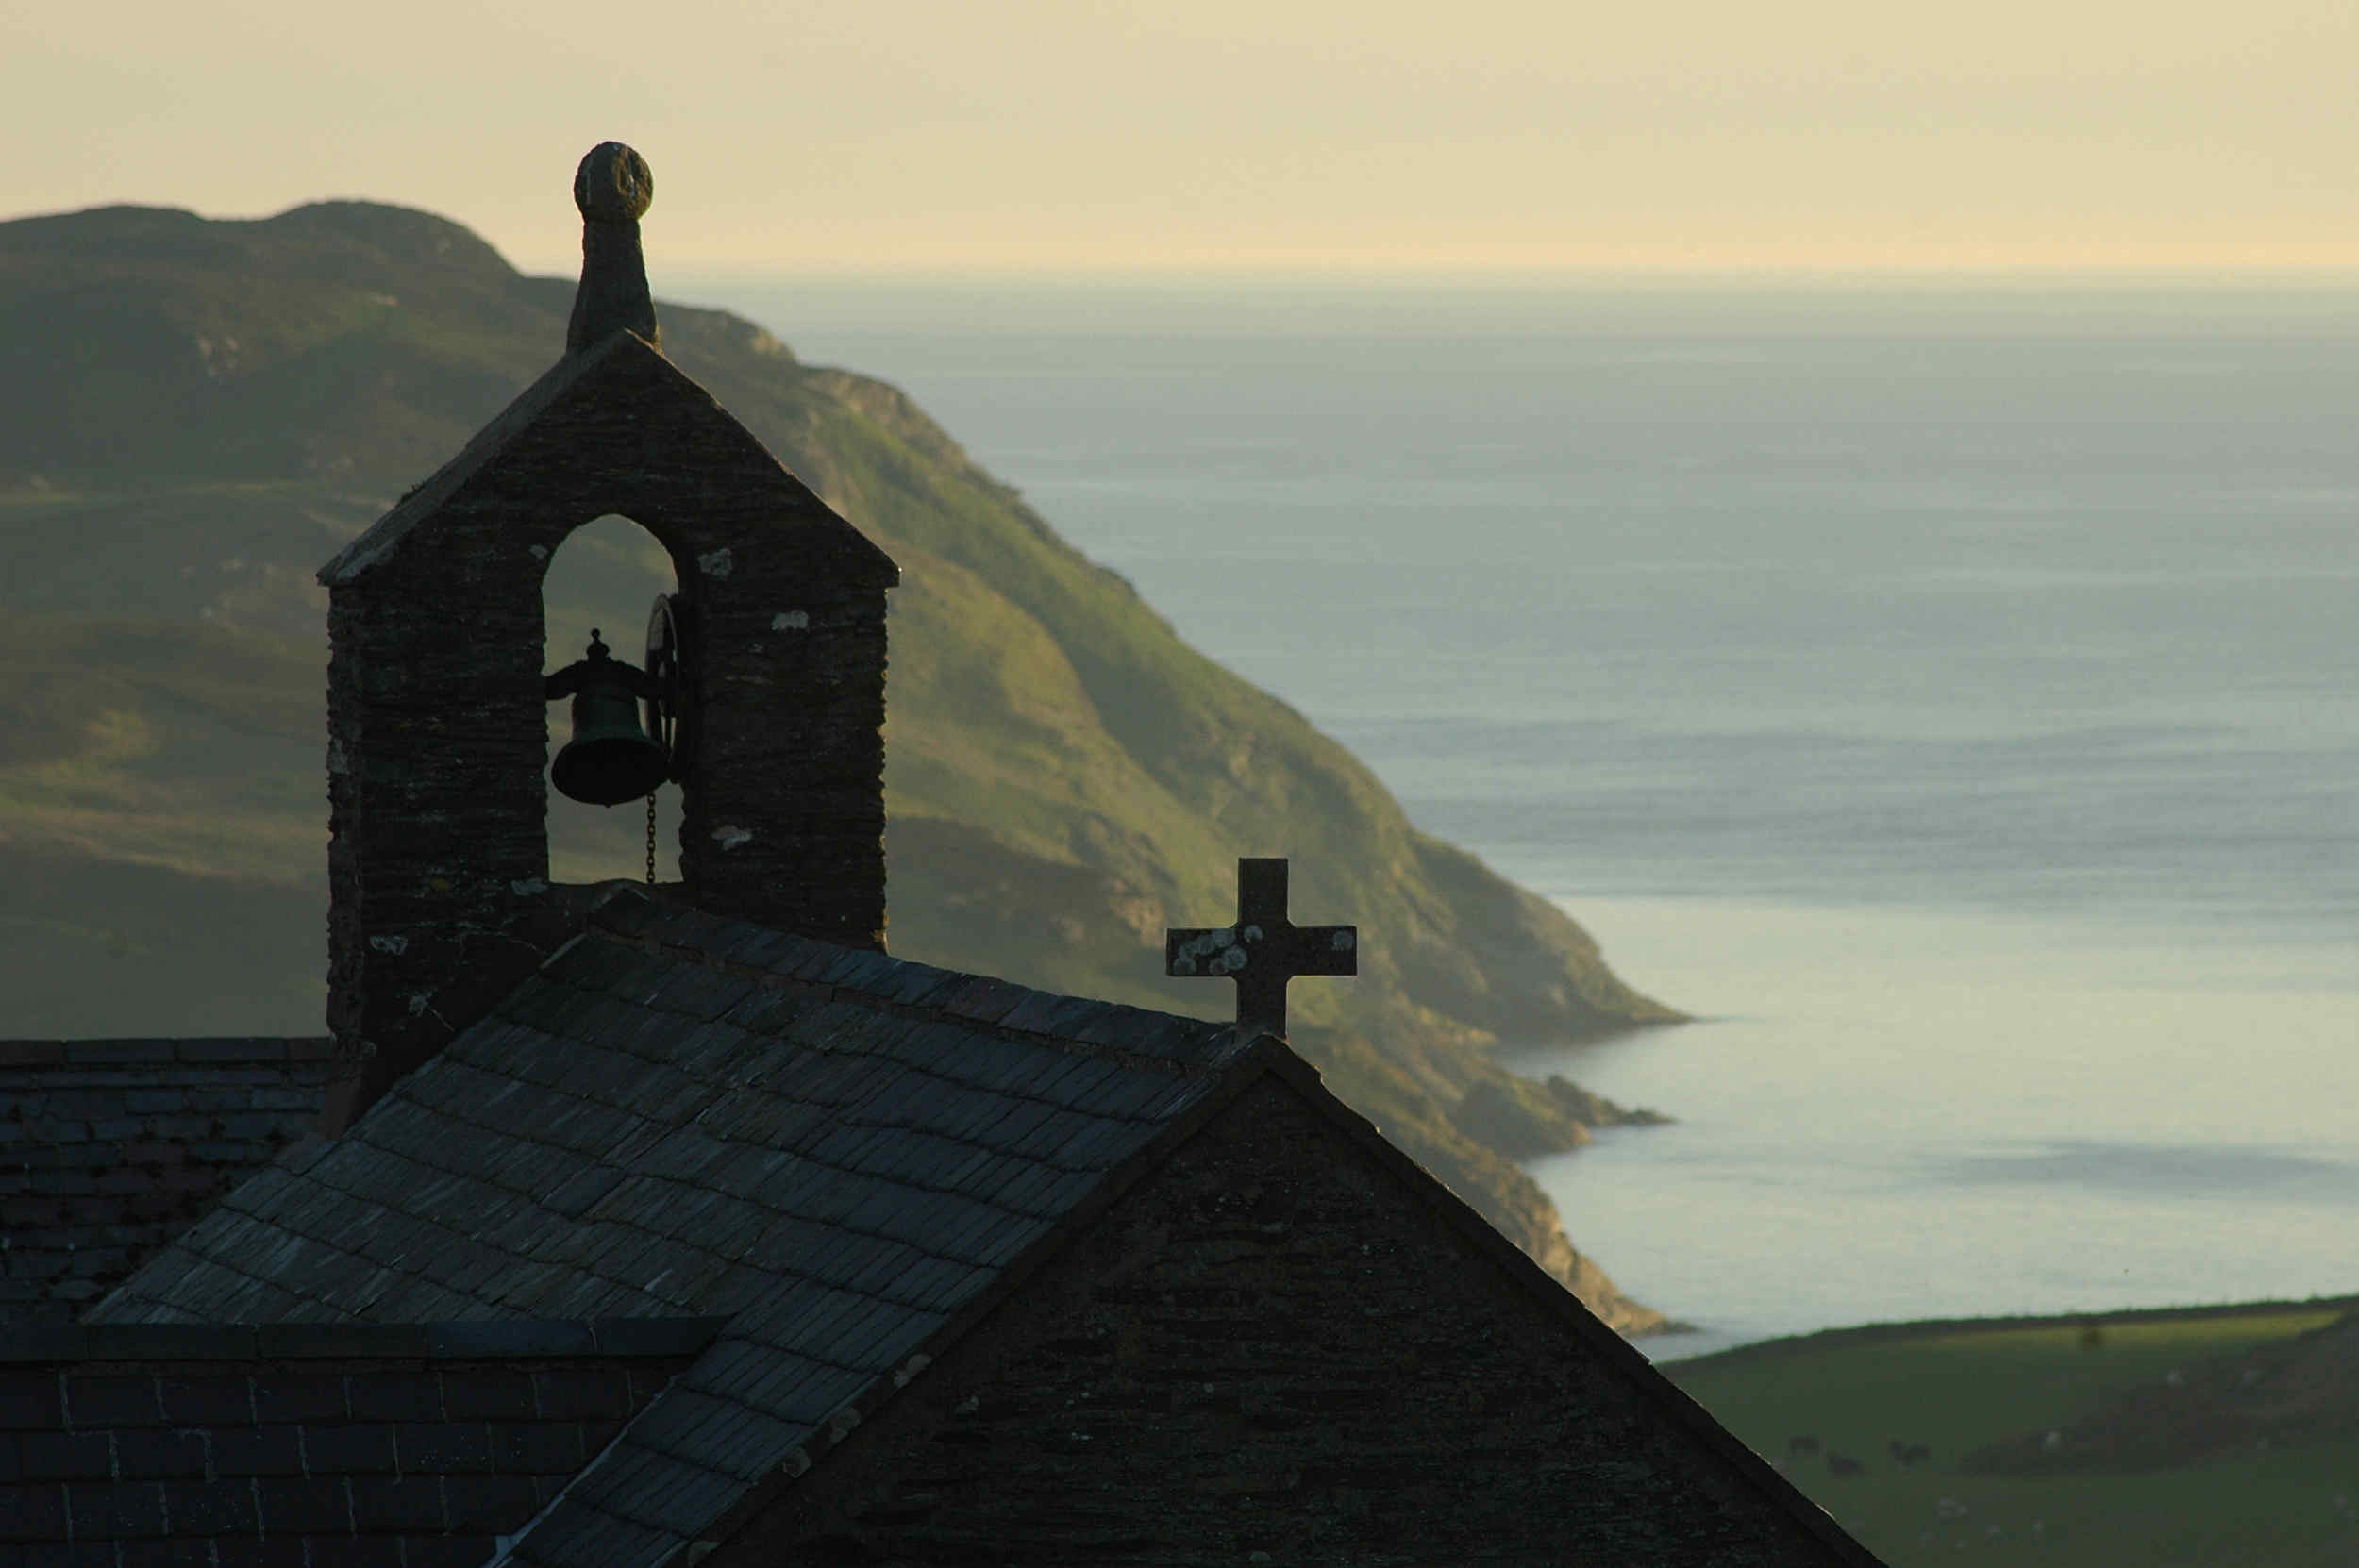 A tranquil sunset at St Peter�s Church in Cregneash, looking south towards the Calf of Man.